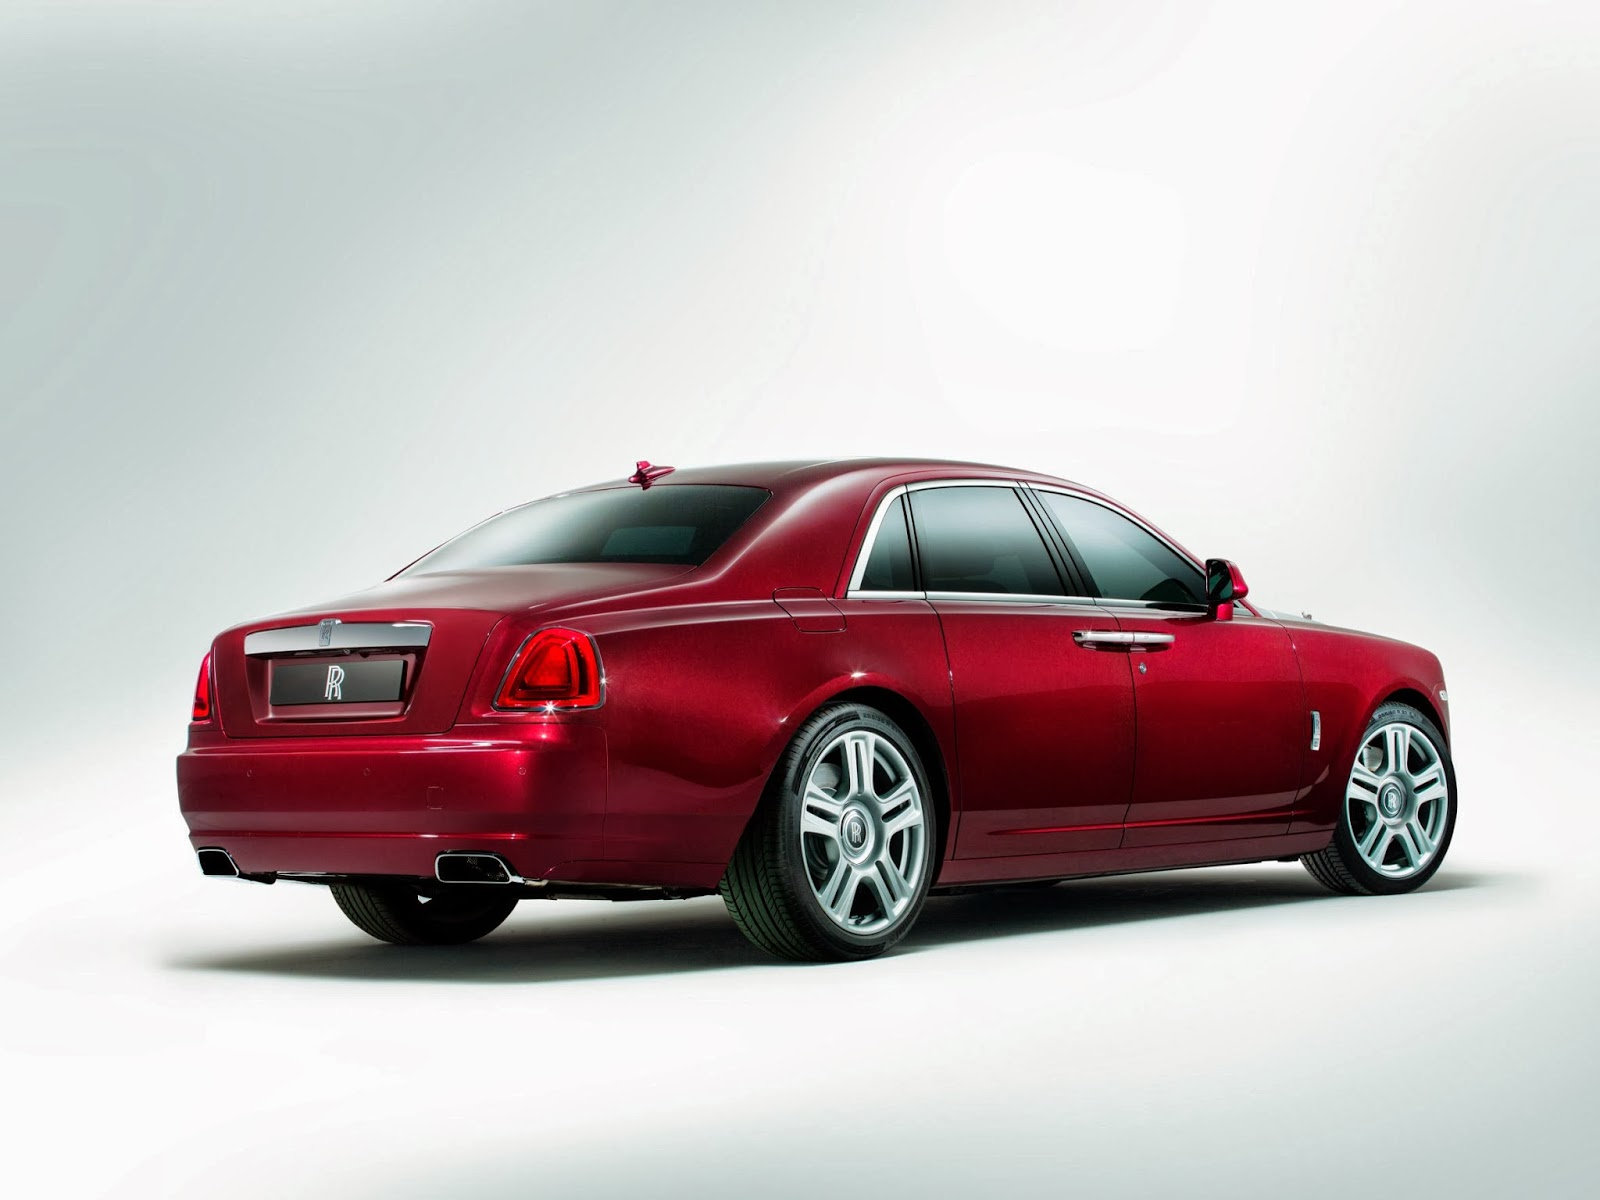 2014 Rolls Royce Ghost Series II